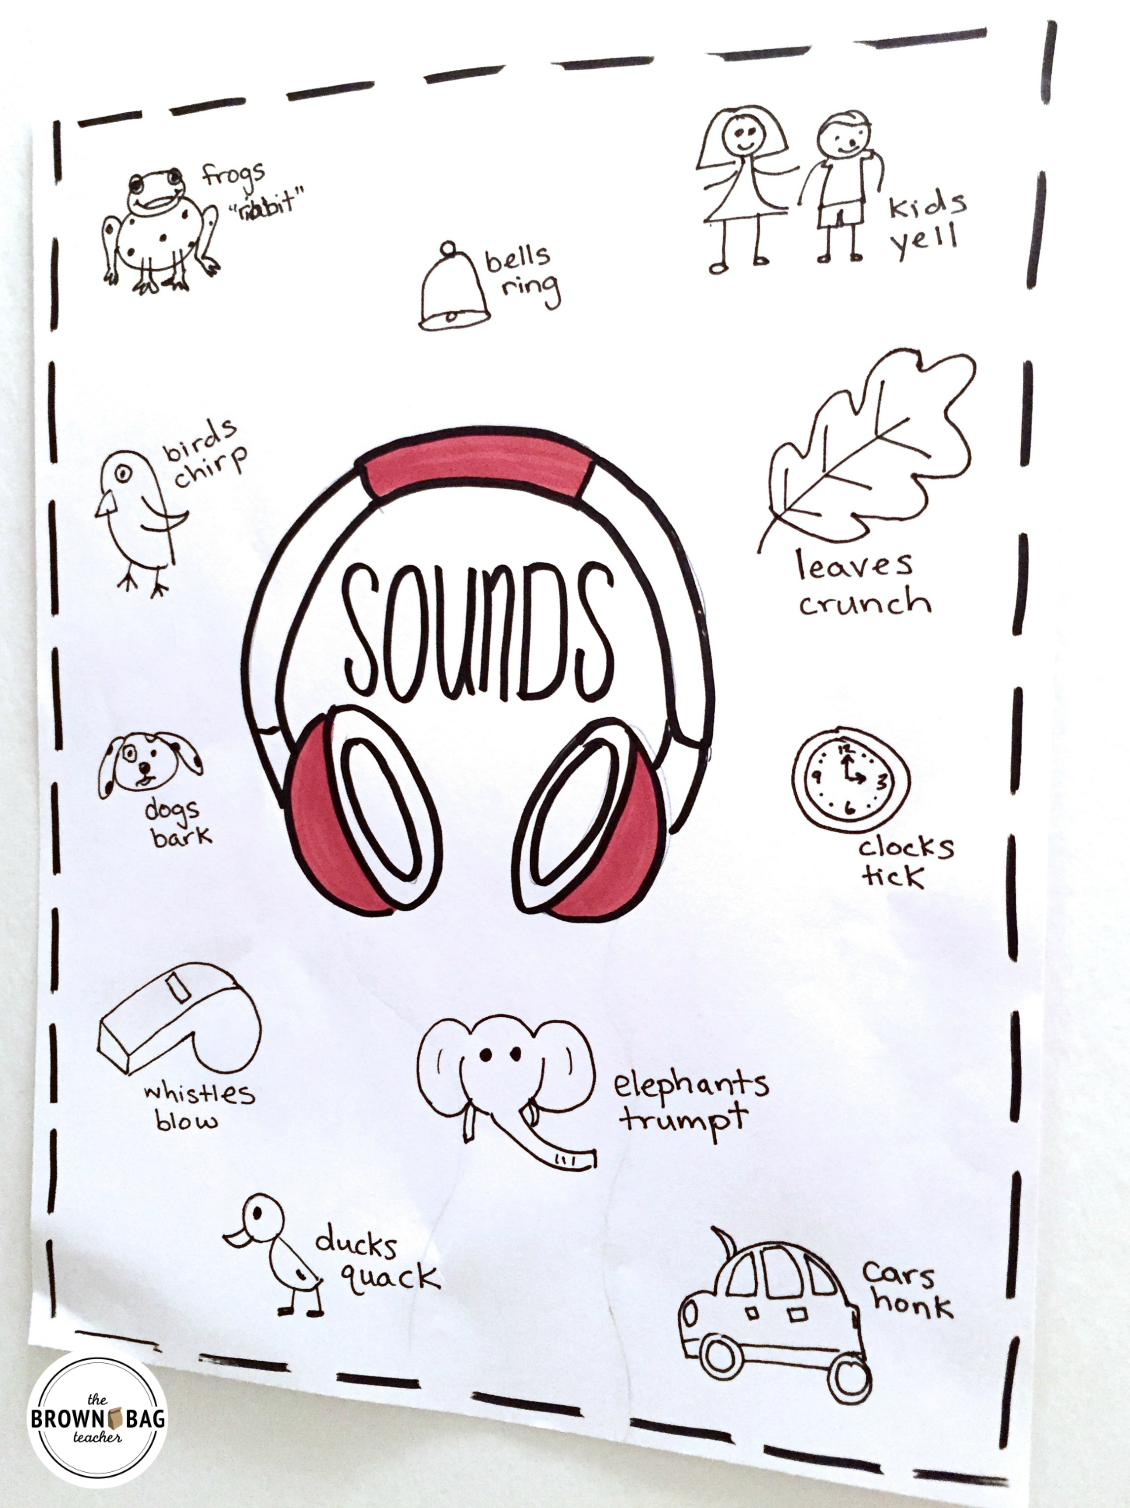 1st Grade Science Worksheets On Sound